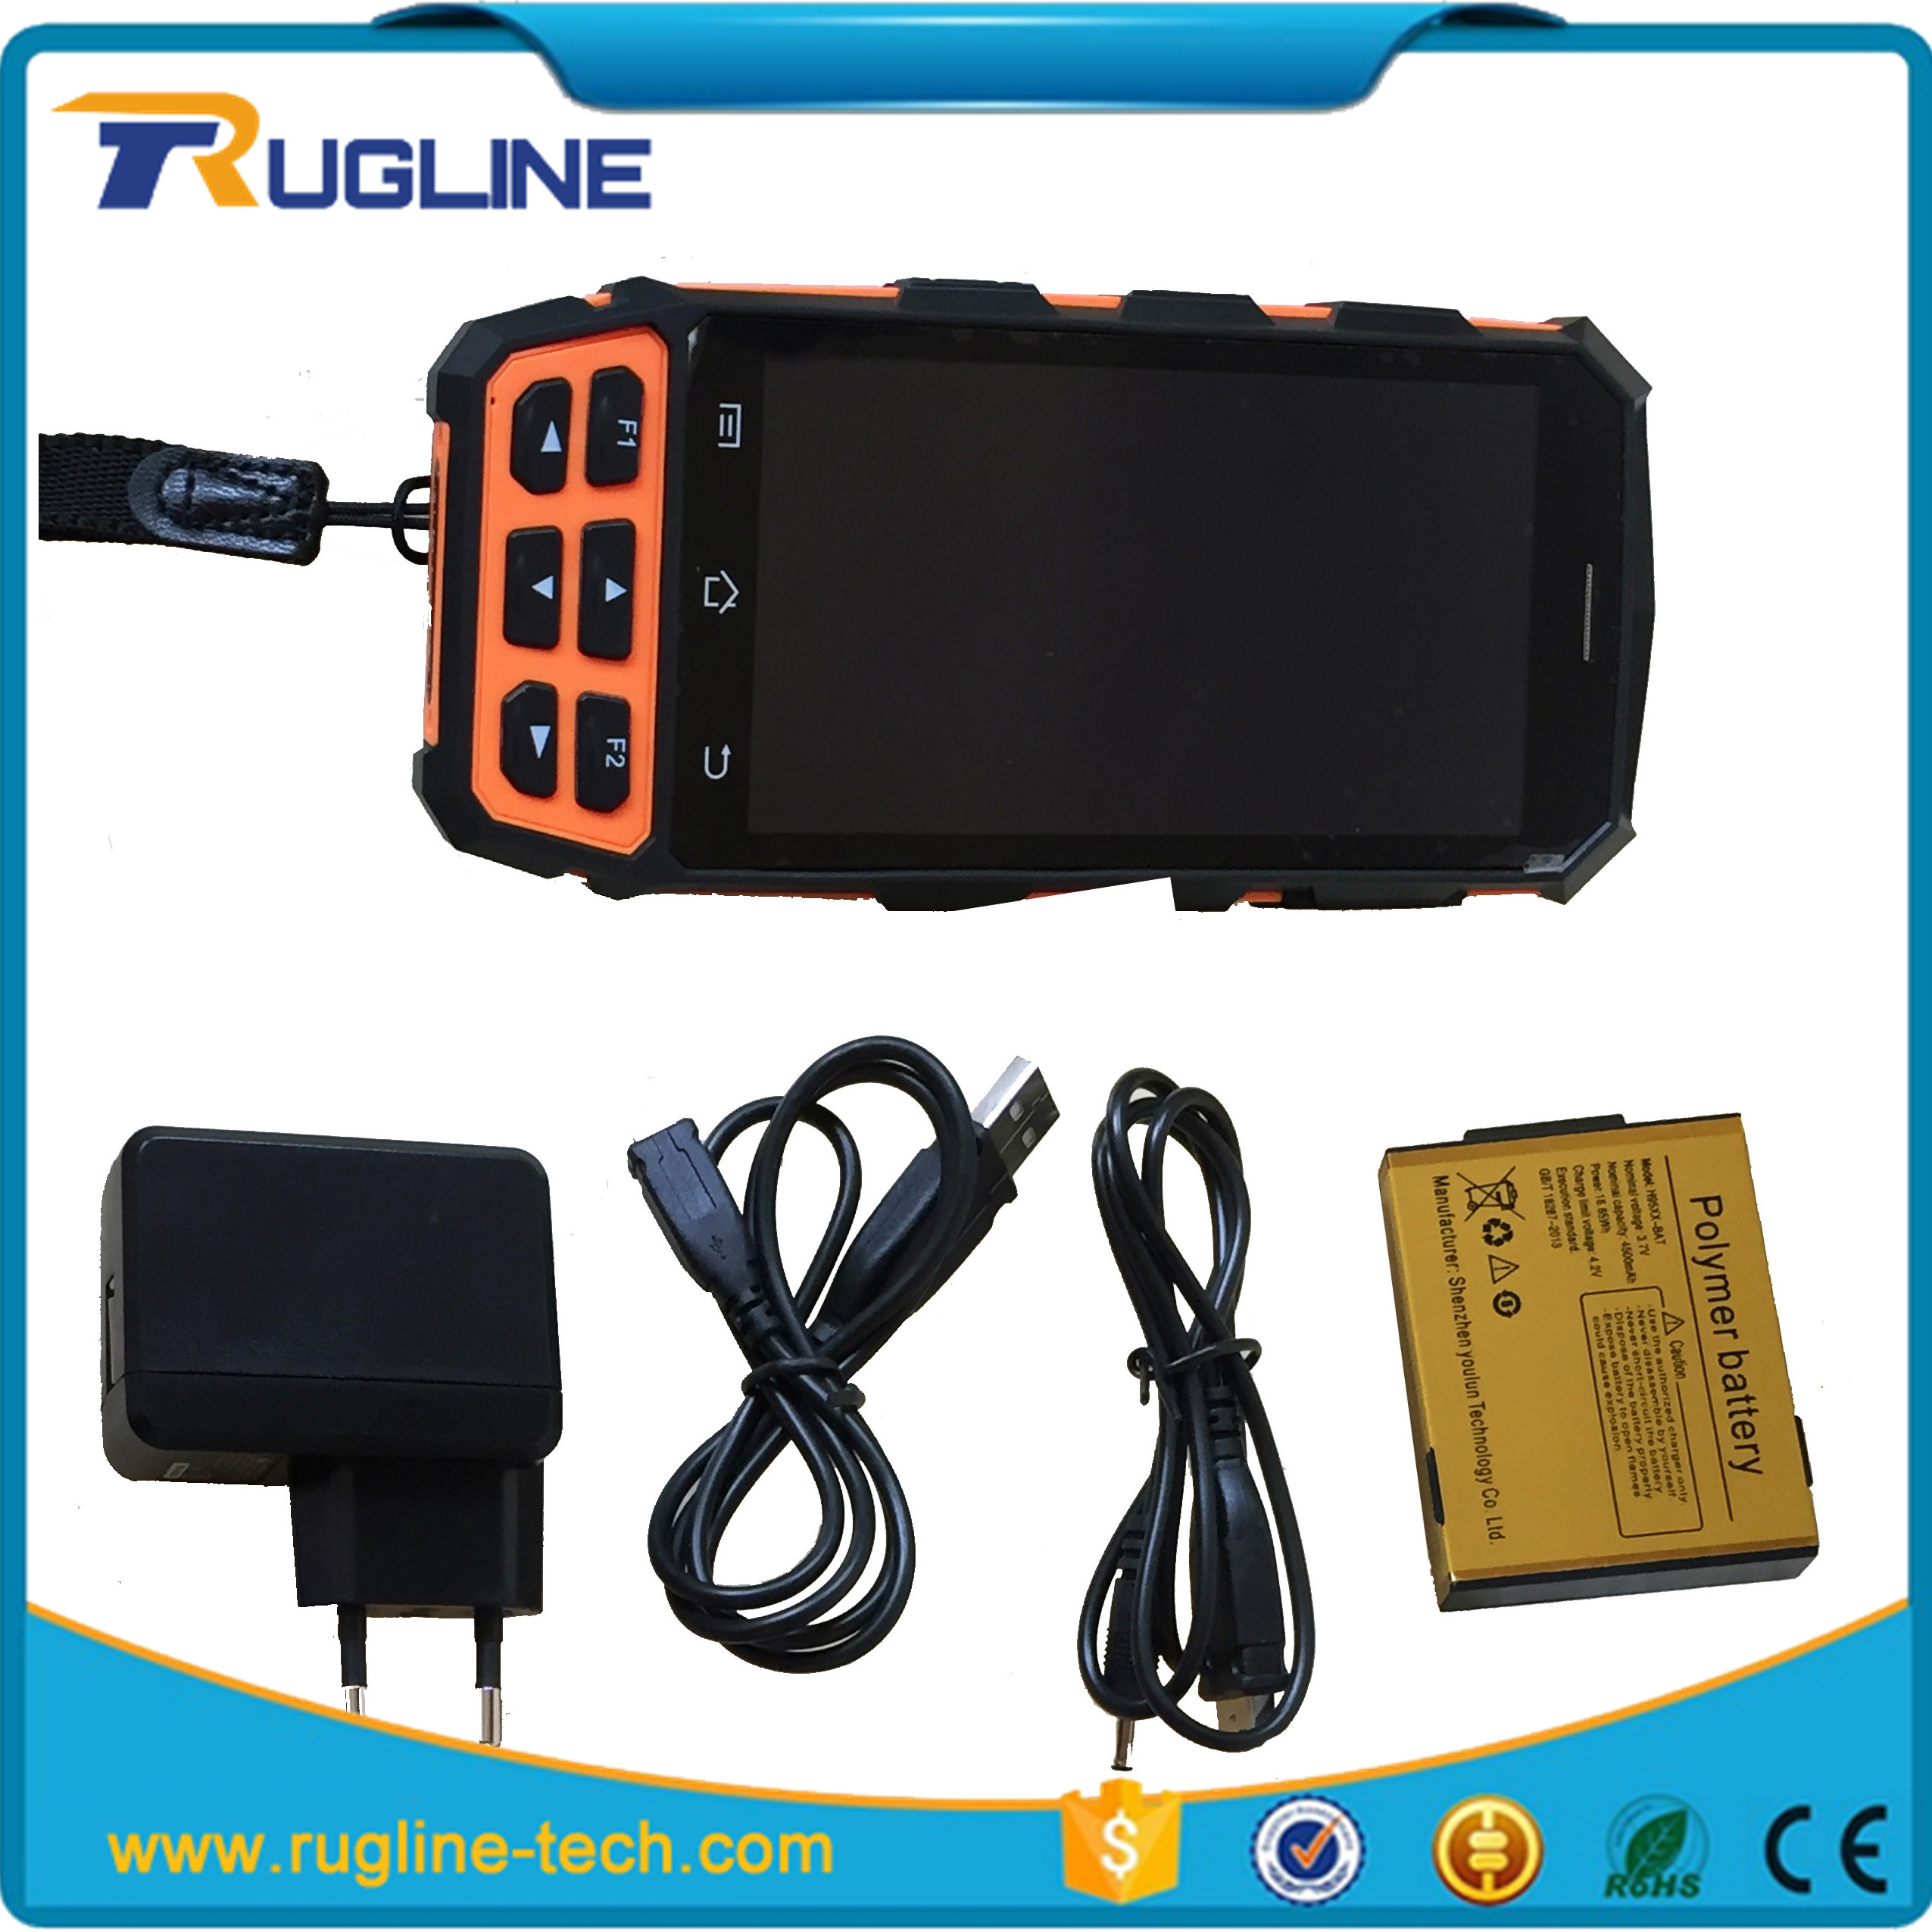 Wireless PDA terminal 4G LTE android handheld pda test senter st327 for Dispatch & Delivery tracking